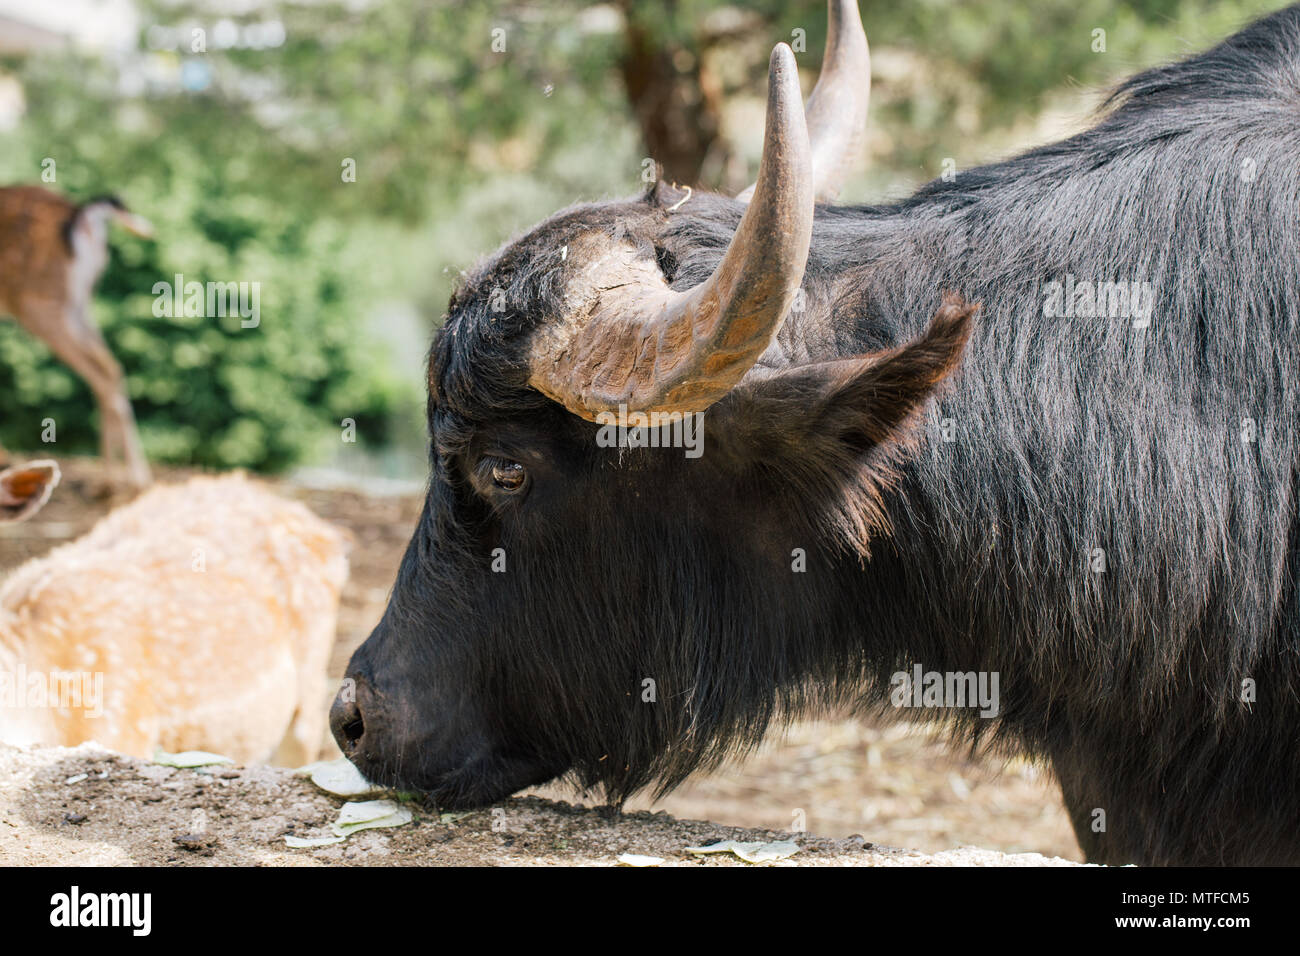 Black Buffalo in Fasano apulia Italy - Stock Image